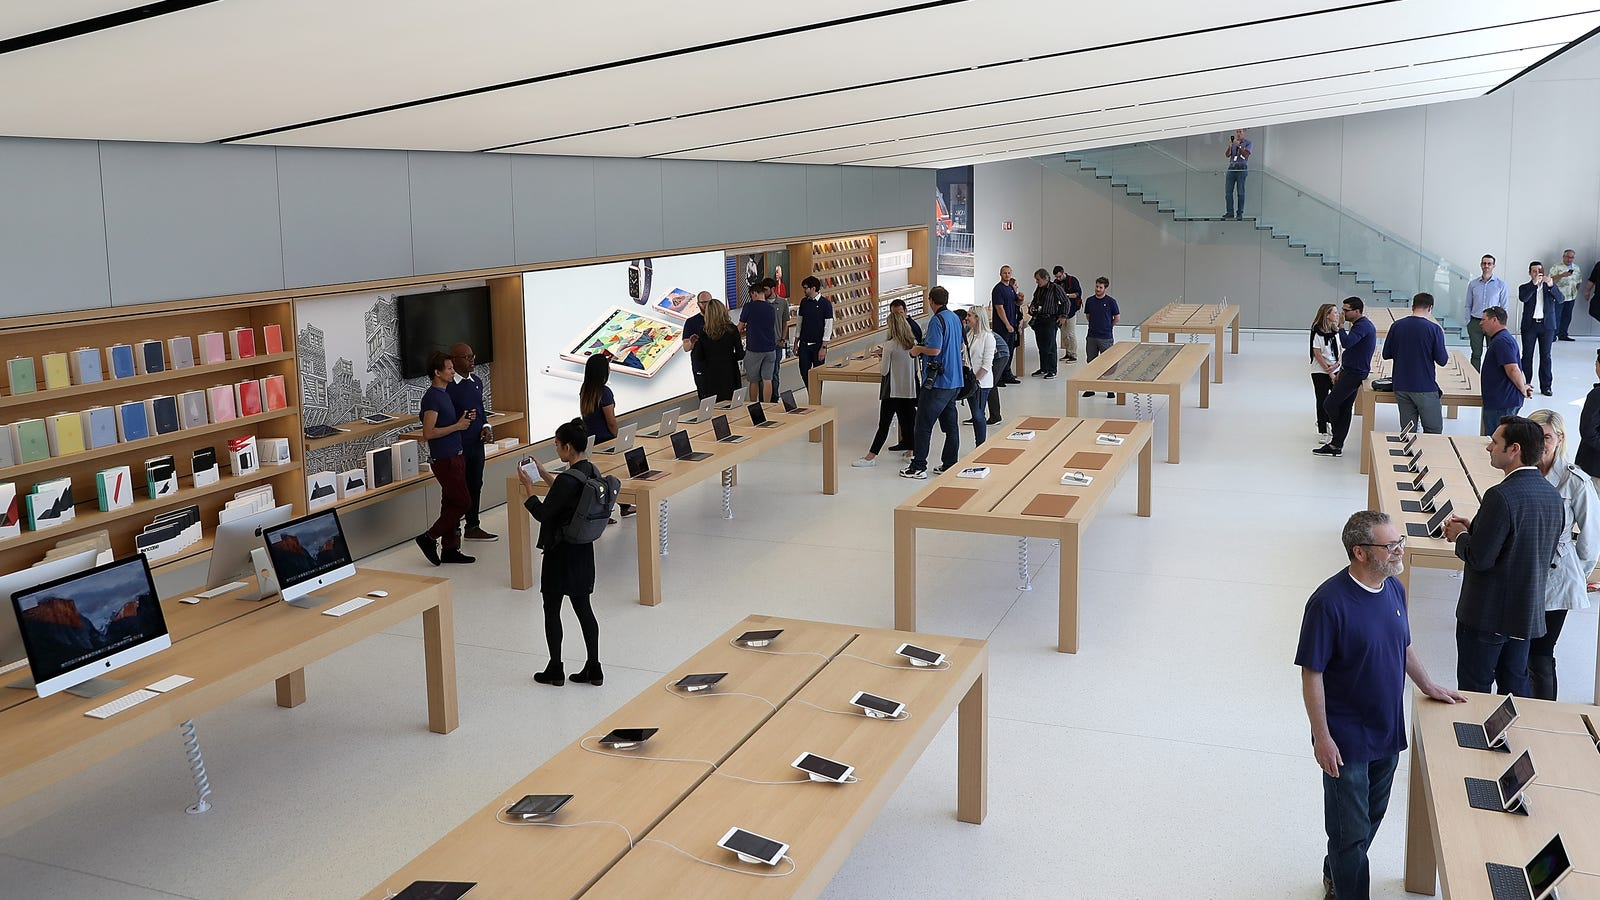 Robbing an Apple Store Looks Exactly as Easy as You'd Expect